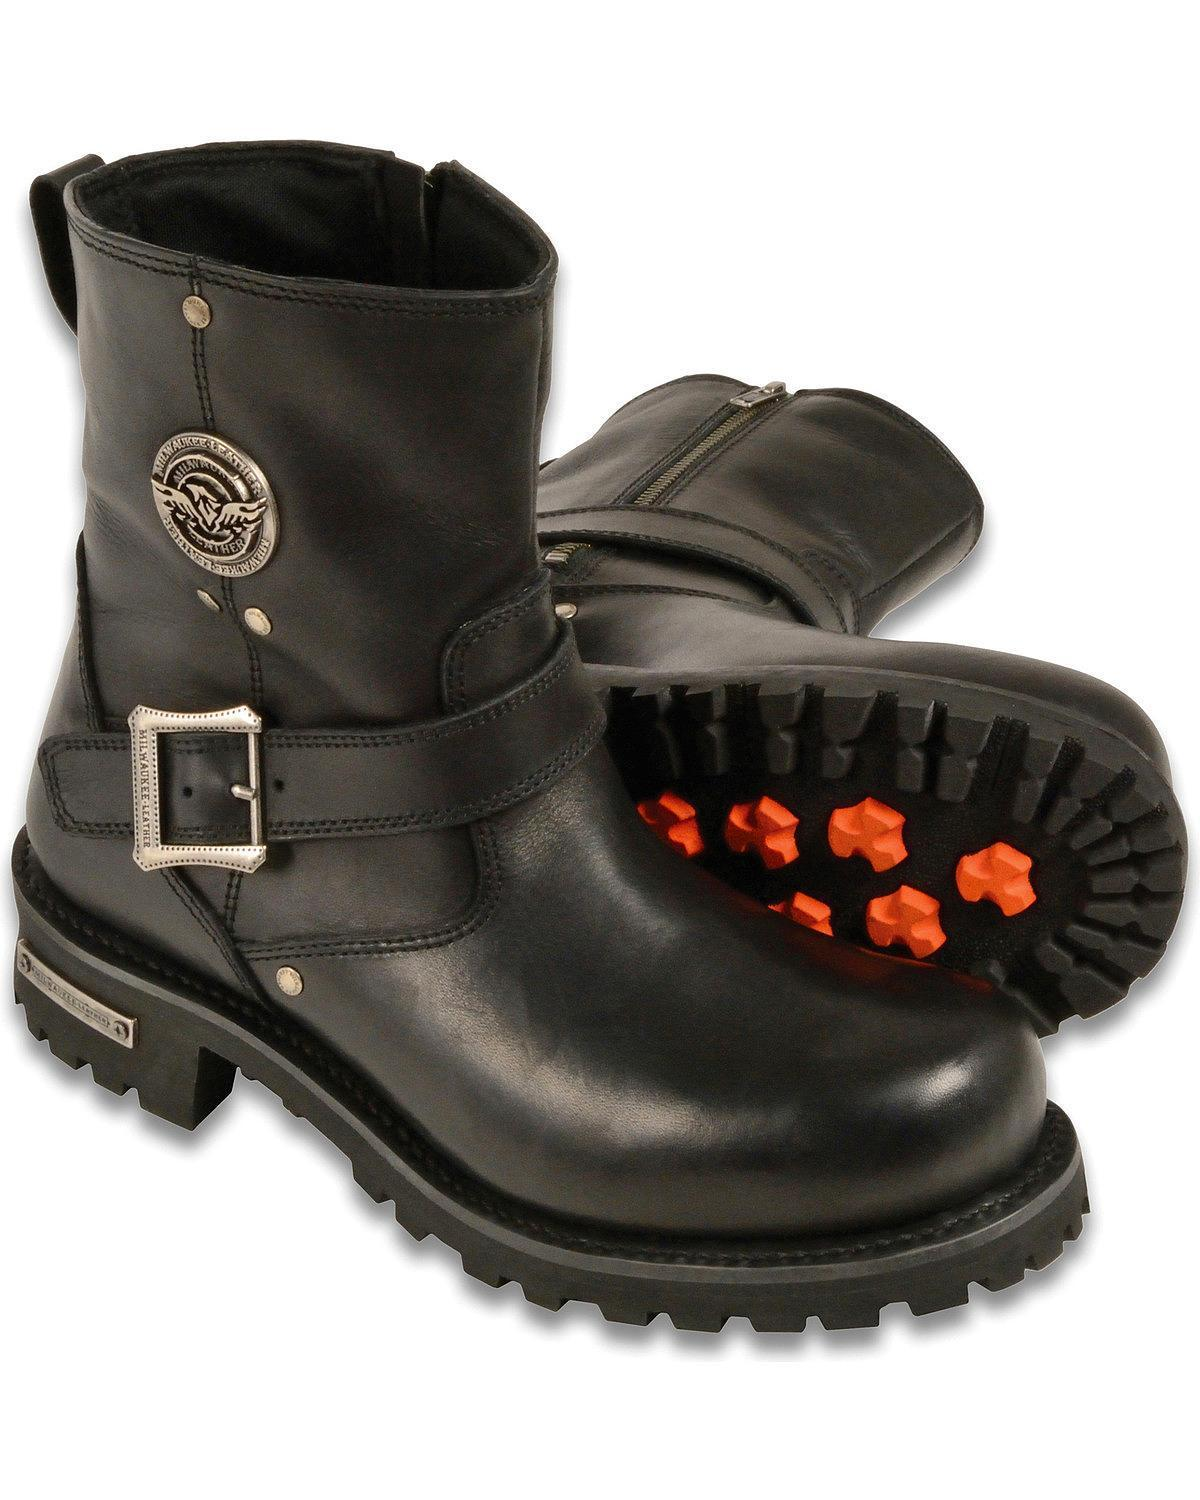 2b710c87a88 Motorcycle Engineer Boots - Free Shipping - motorcyclecenter